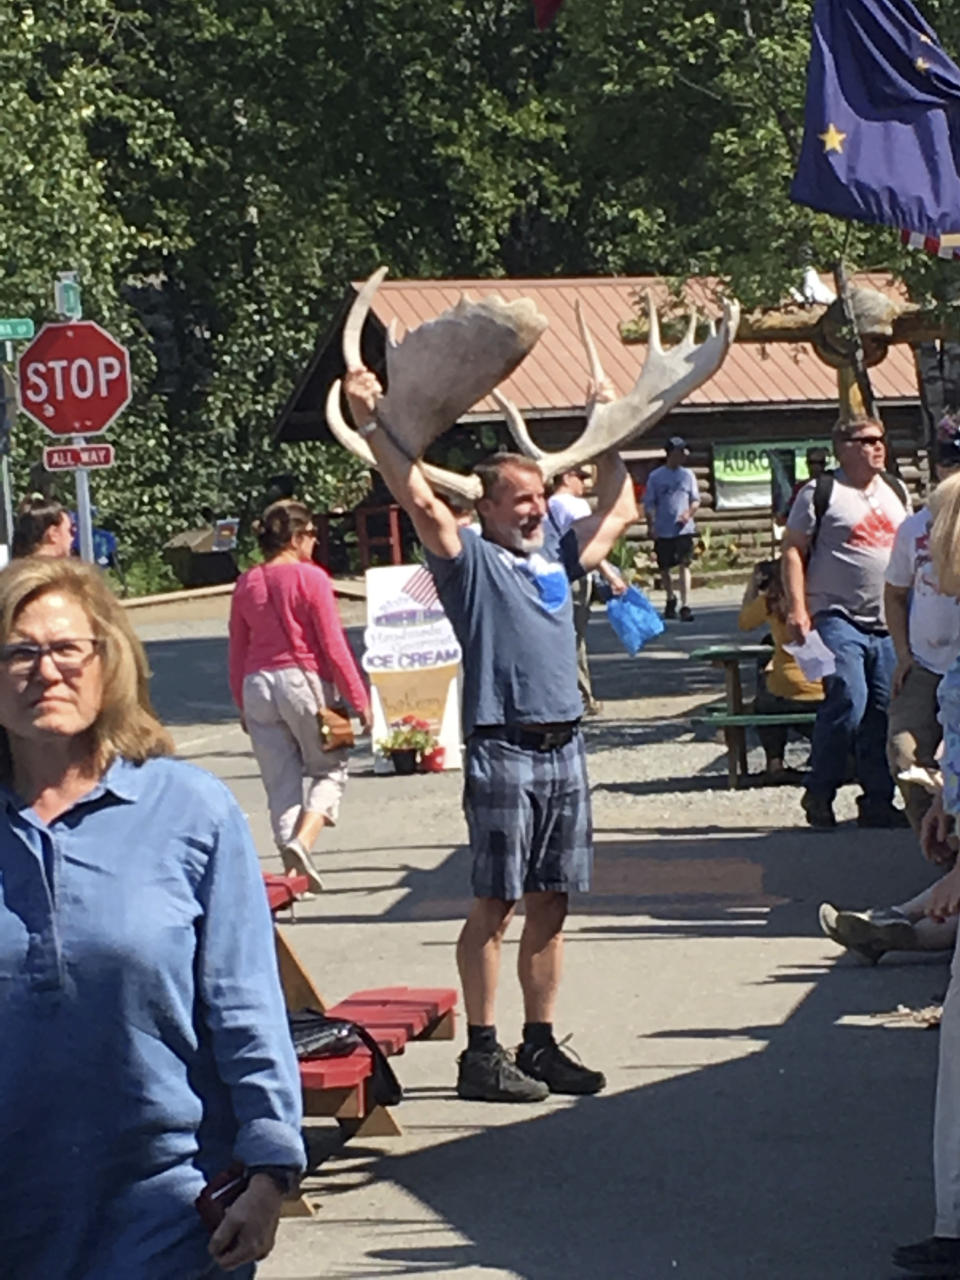 In this July 7, 2018, photo people browse a crowded Main Street in the tourist town of downtown Talkeetna, Alaska. This summer, streets are pretty quiet in Talkeetna after most major cruise ship companies canceled their summer tourist seasons due to the coronavirus pandemic. As a result nearly half of Alaska's annual 2.2 million visitors won't be visiting the nation's northernmost state. (AP Photo/Mark Thiessen)